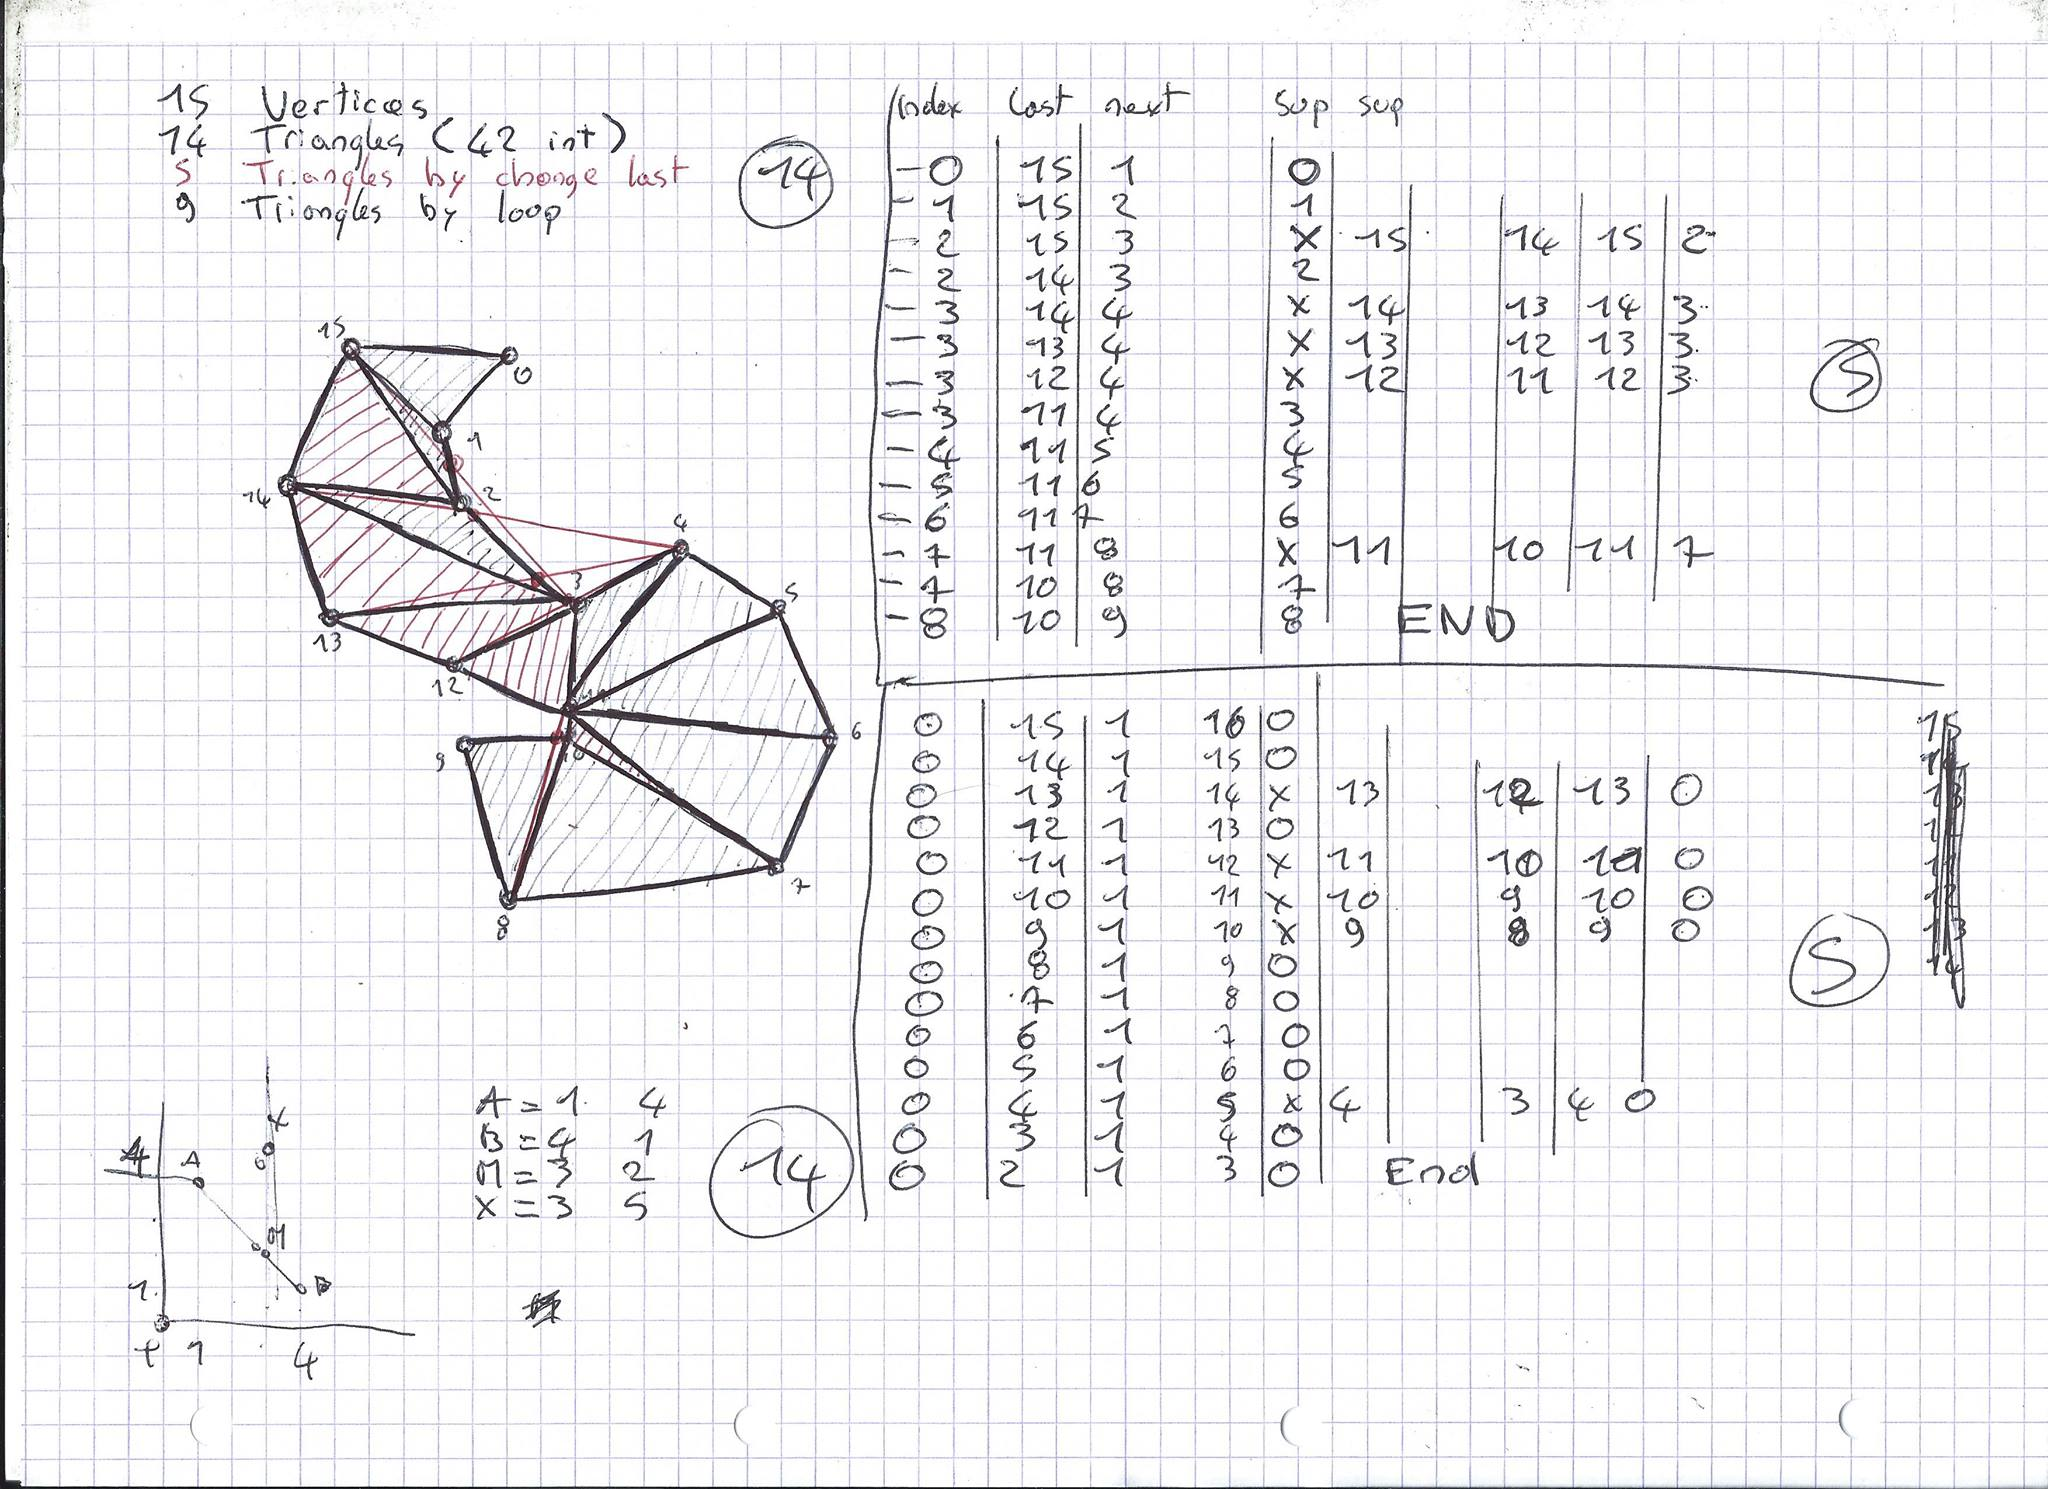 The Best Free Component Drawing Images Download From 50 Free Drawings Of Component At Getdrawings